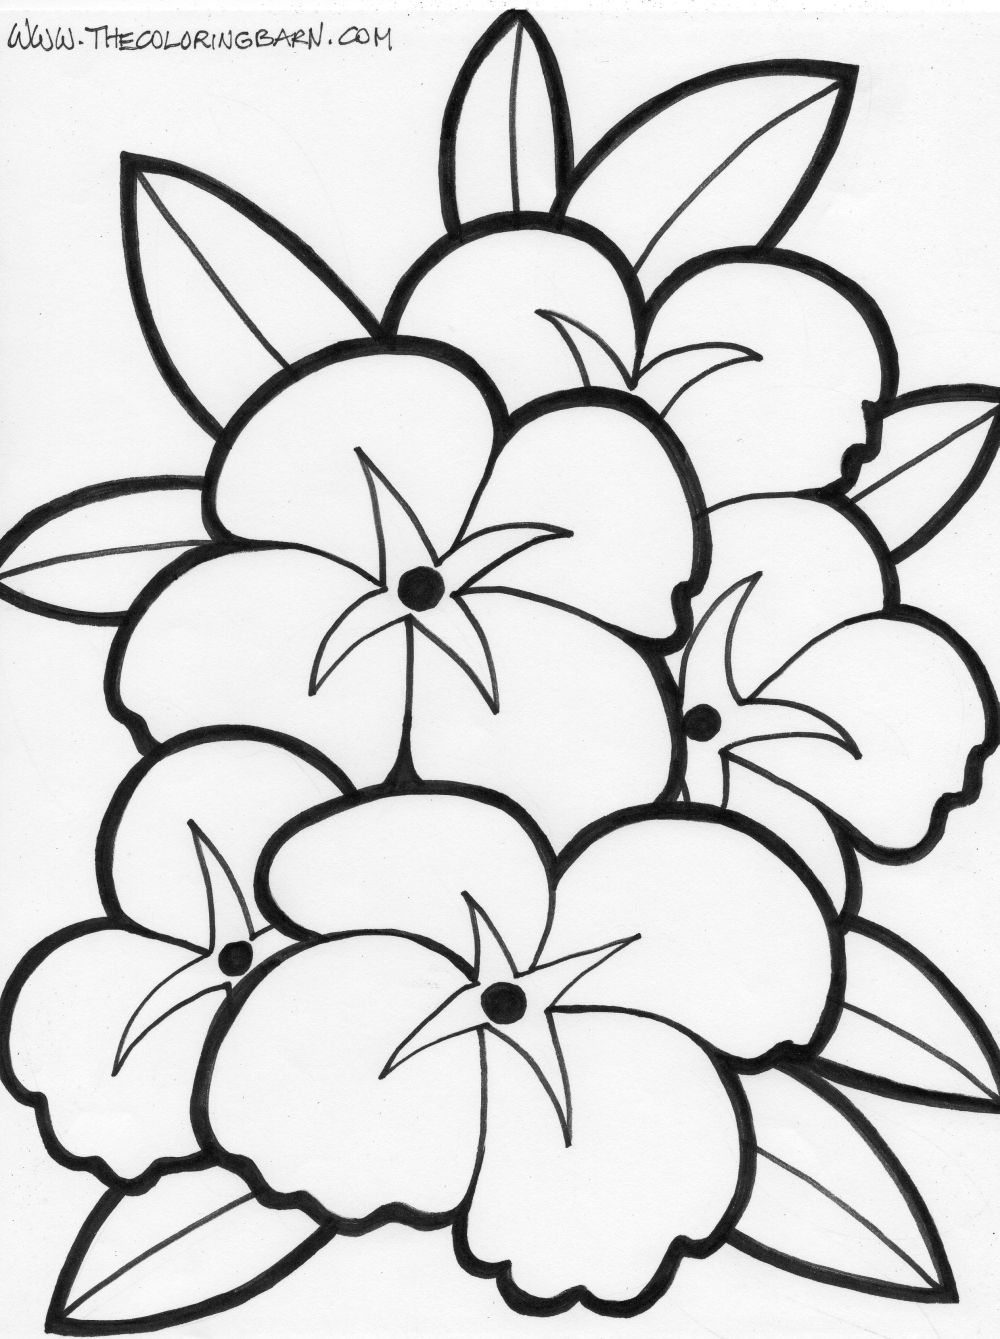 big flowers coloring page multiple flowers coloring page moon flower